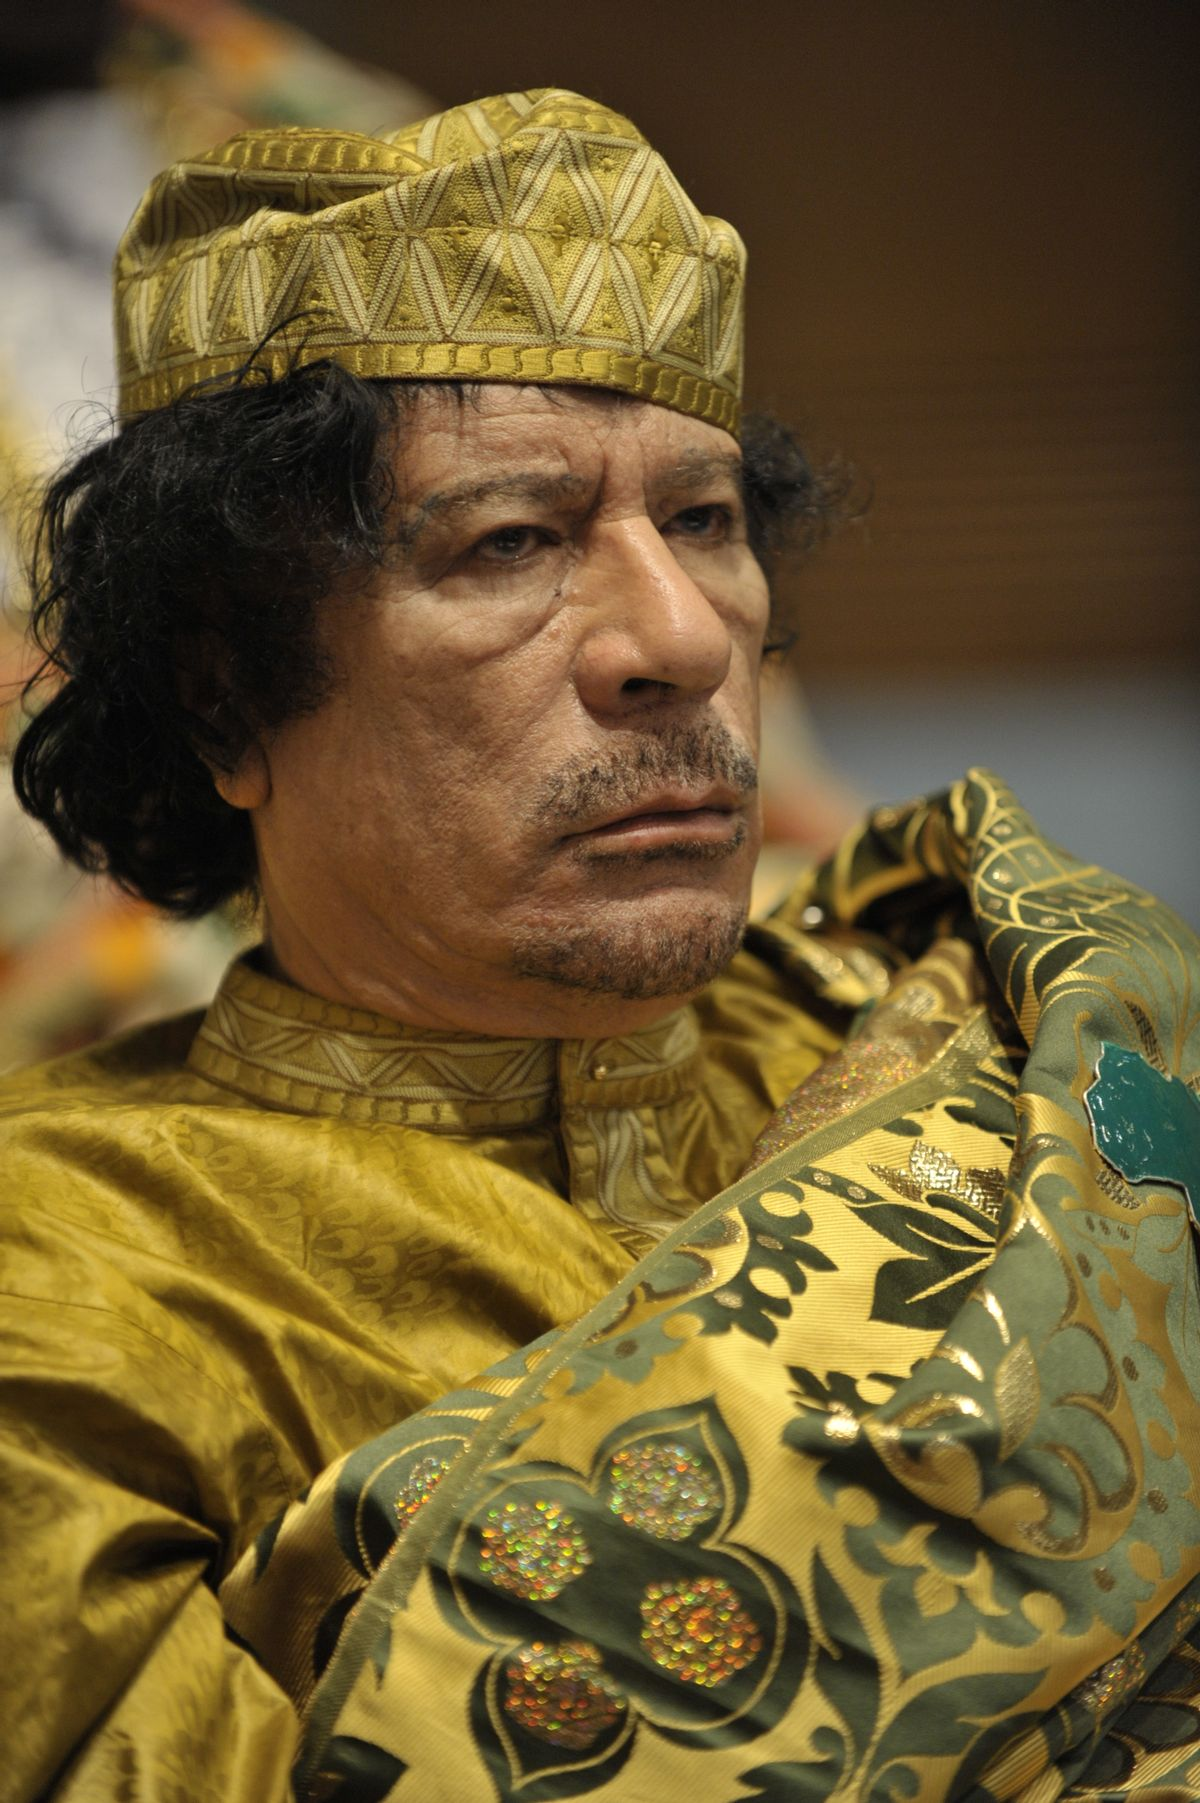 Muammar Qaddafi, the Libyan chief of state, attends the 12th African Union Summit in Addis Ababa, Ethiopia, Feb. 2, 2009. Qaddafi was elected chairman of the organization. (U.S. Navy photo by Mass Communication Specialist 2nd Class Jesse B. Awalt/Released)     (Cjtf-hoa/pao)